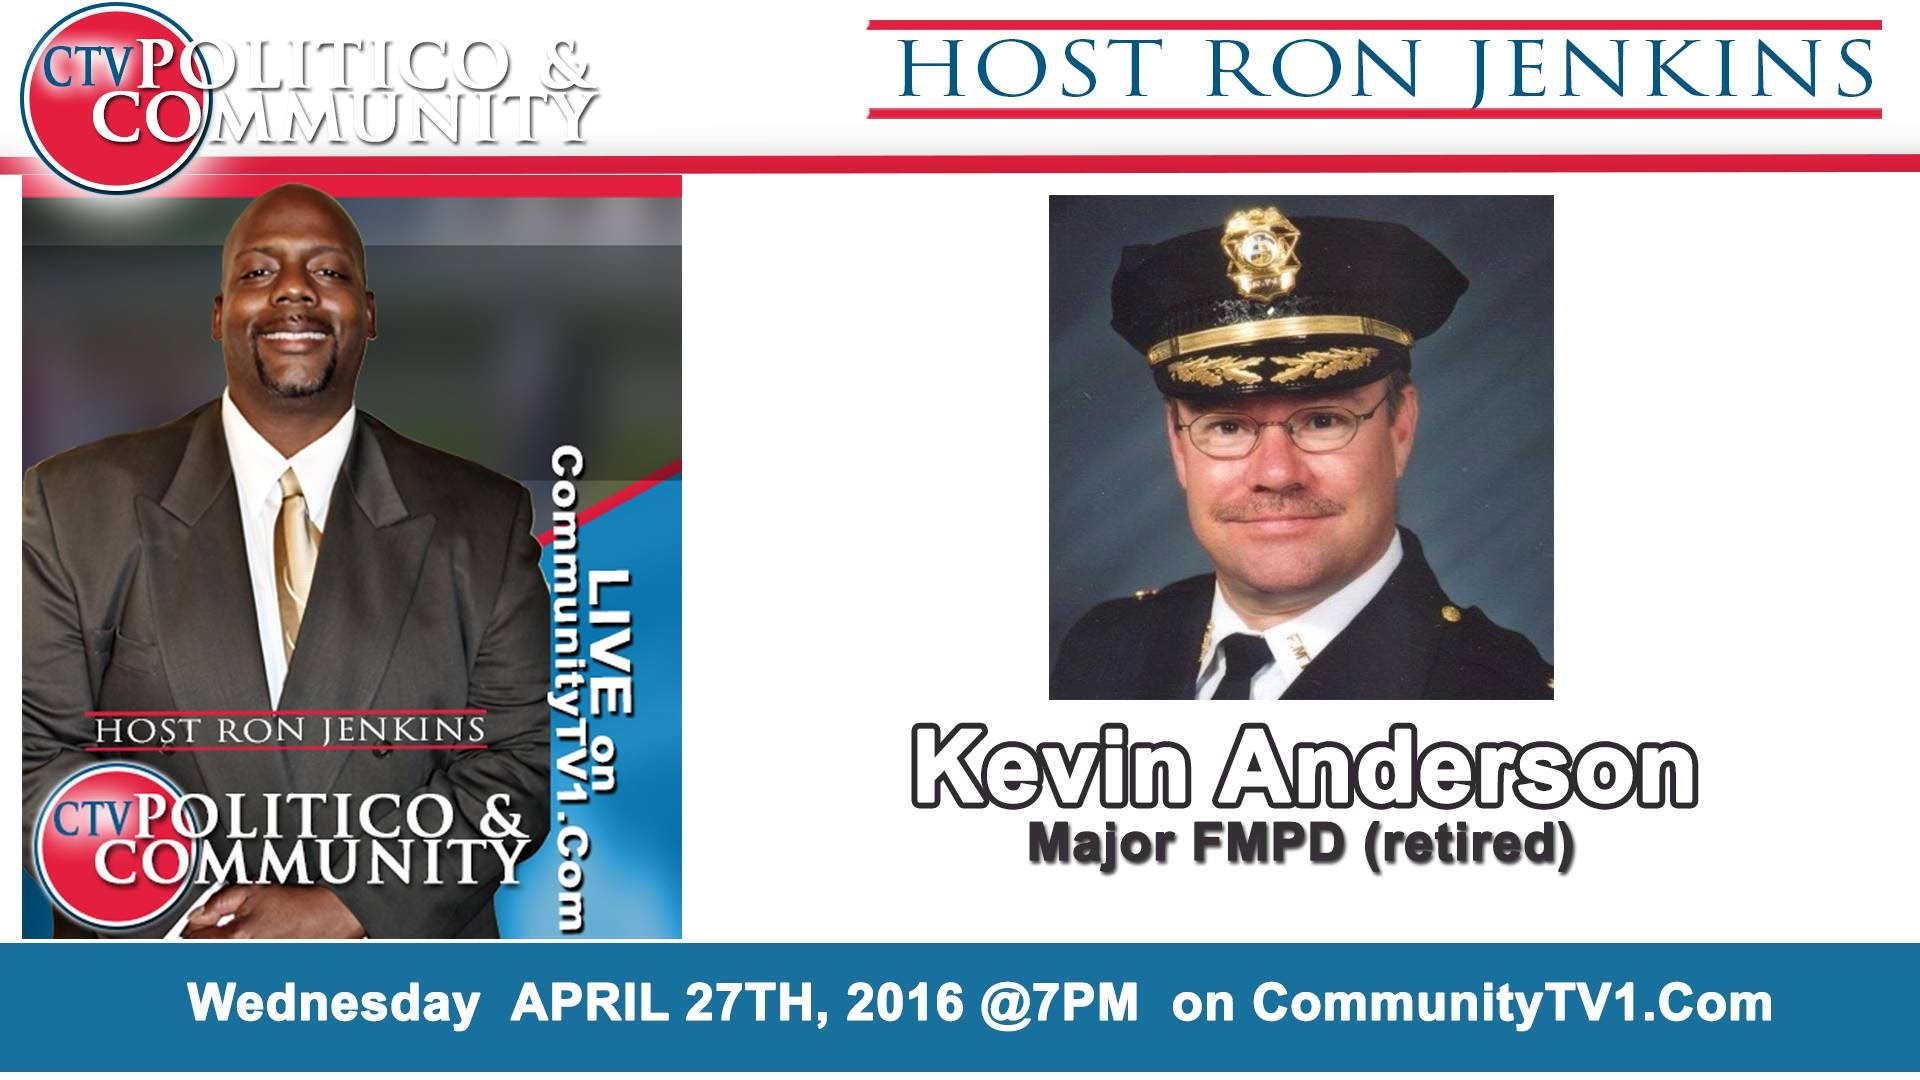 [4-27-2016] CTV Politico & Community with guest Kevin Anderson FMPD Major (Retired)